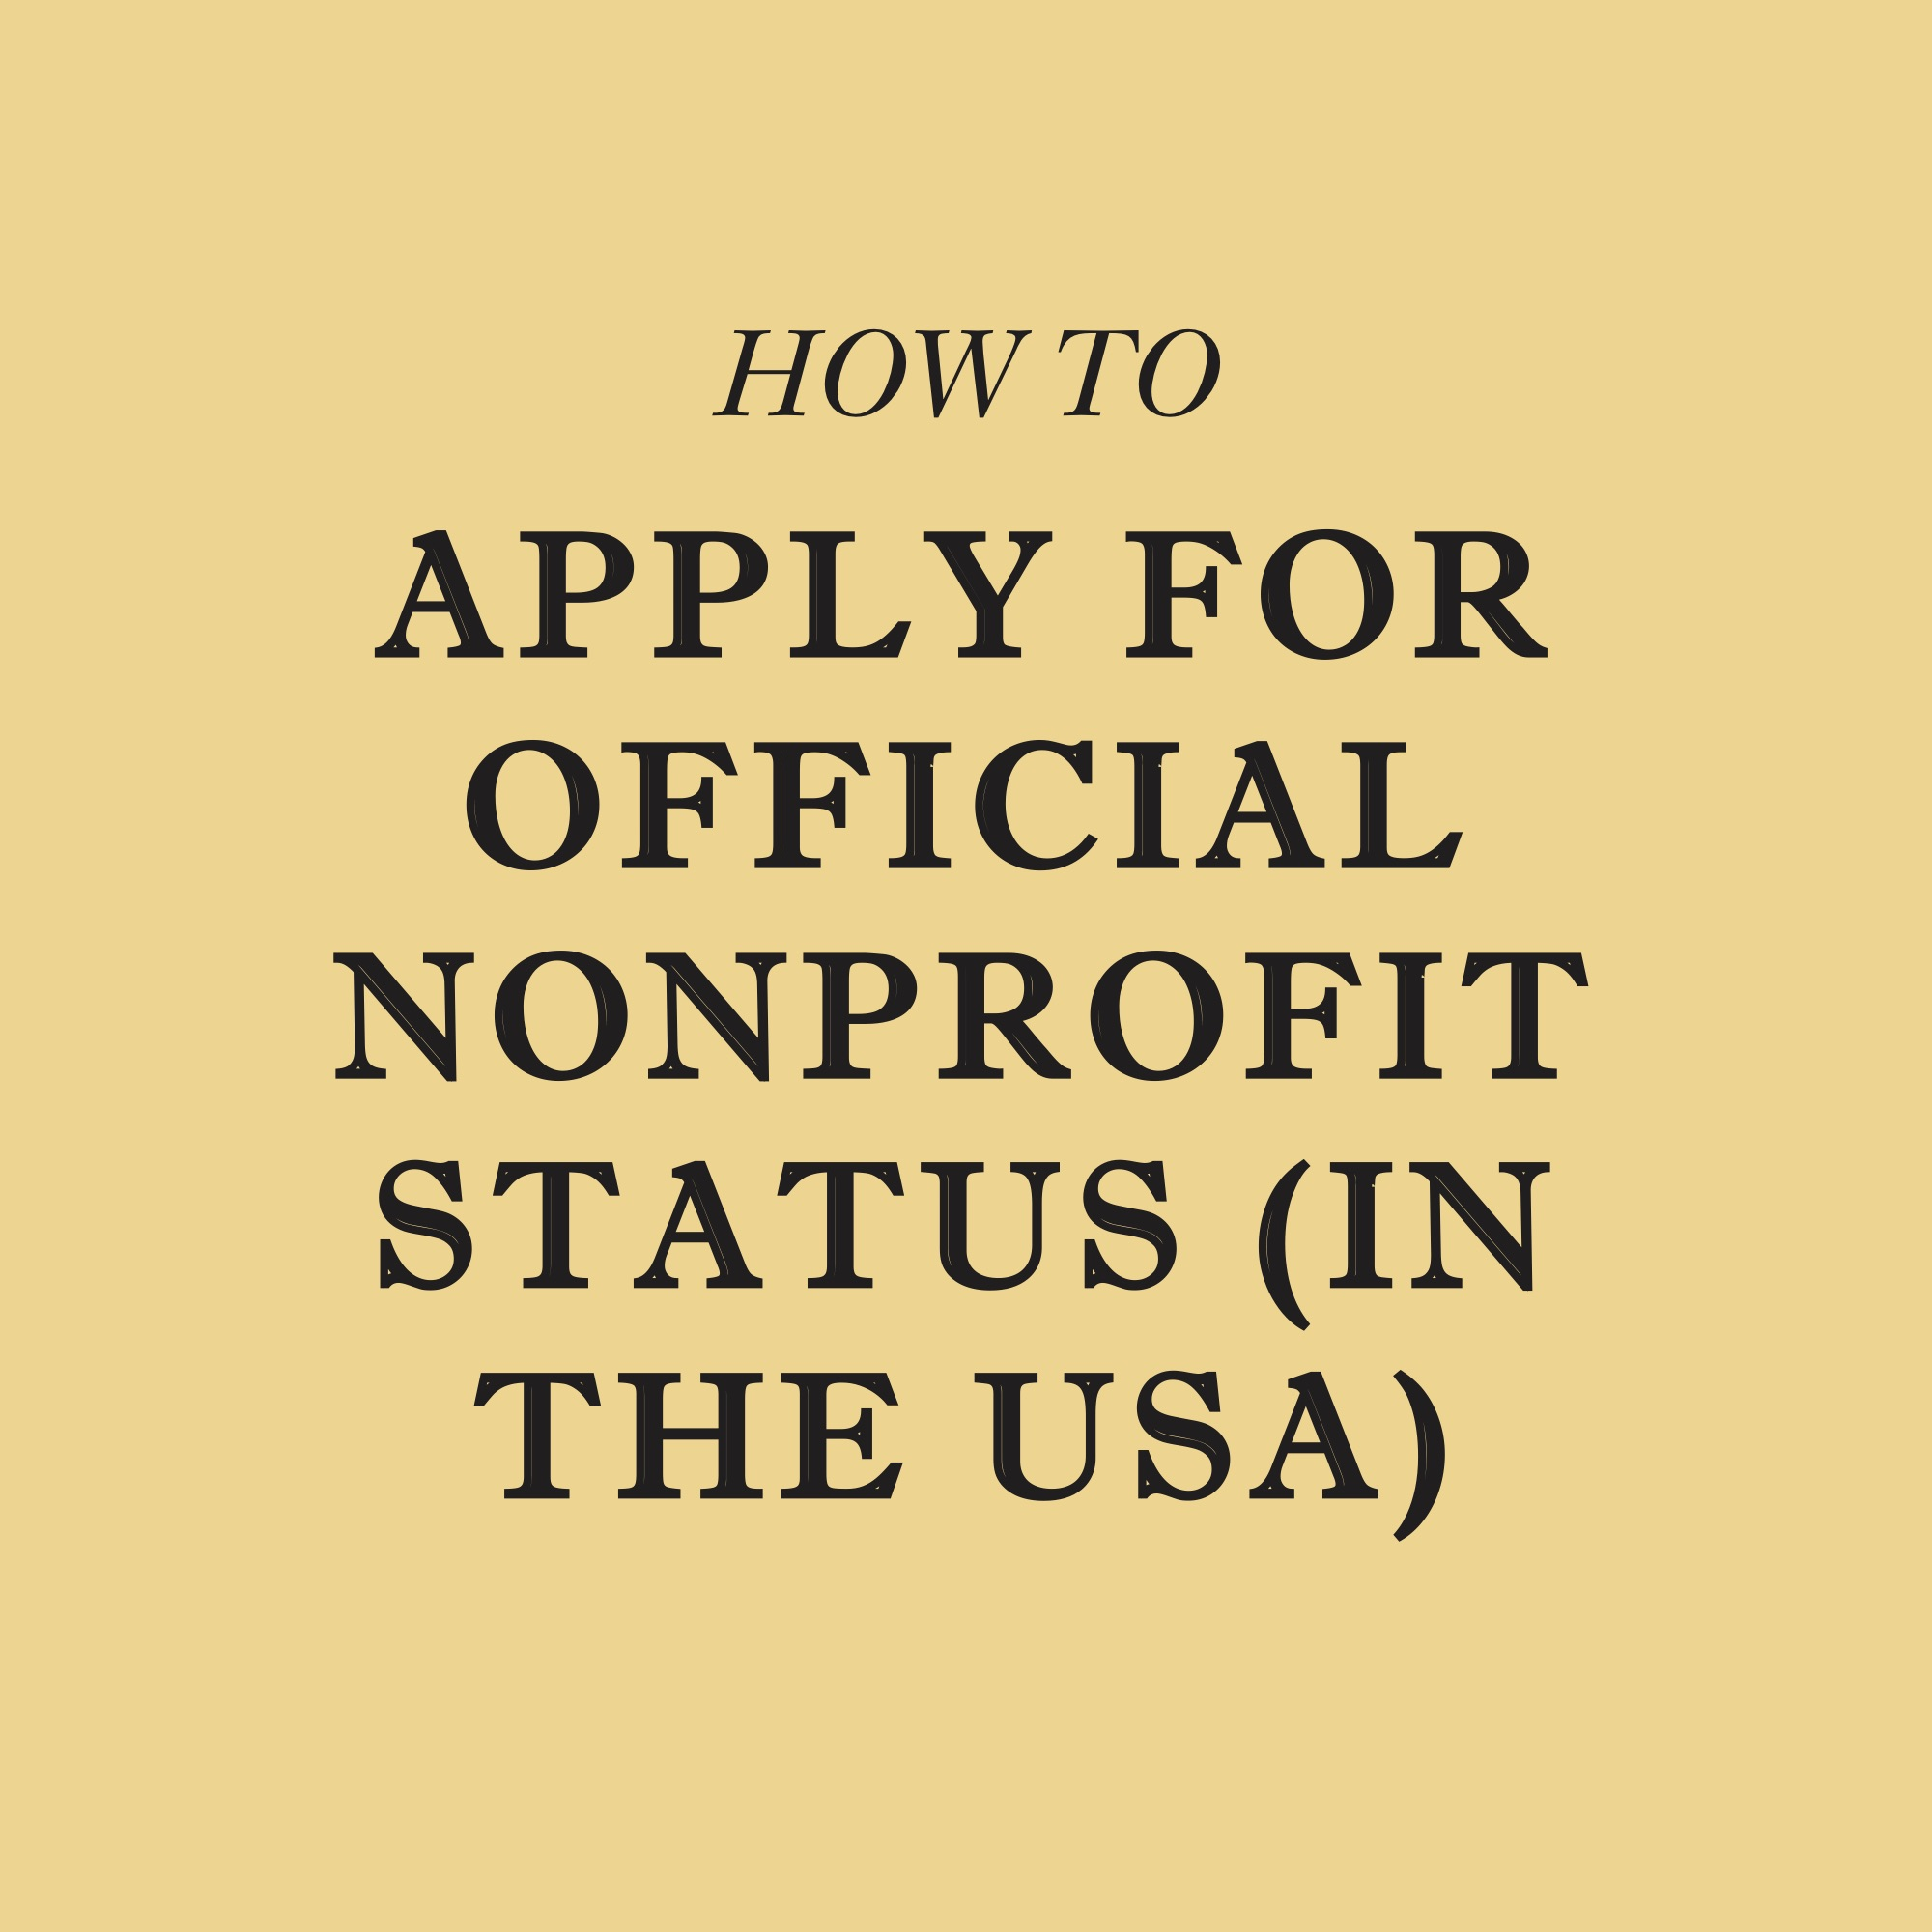 ApplyforNonprofit_Layout 1.jpg